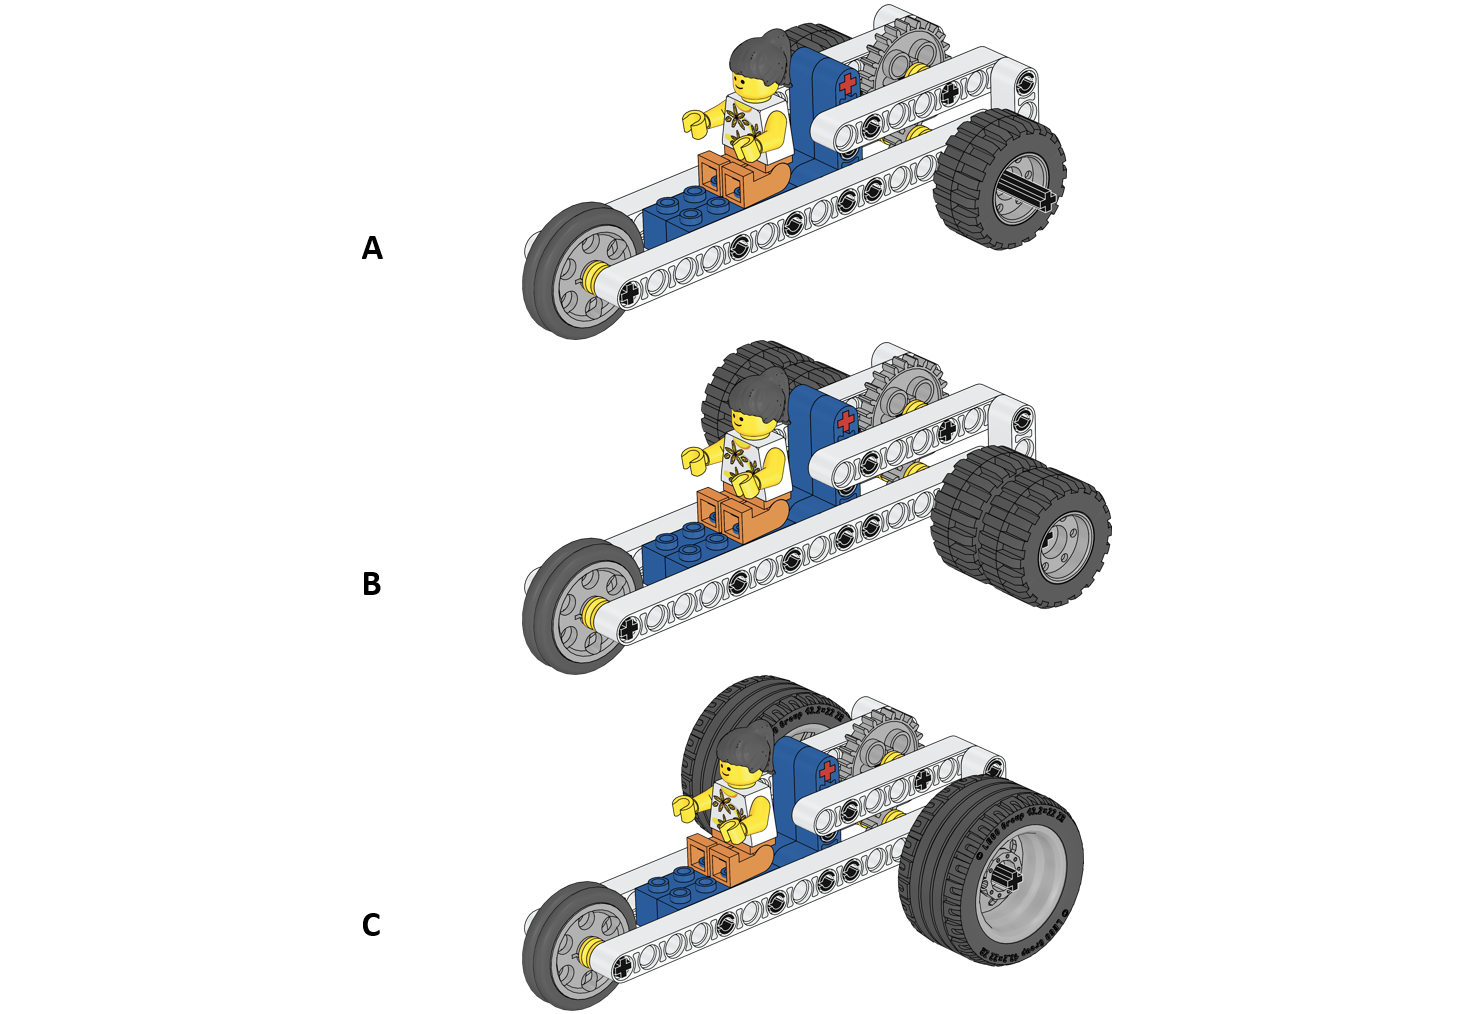 Dragster - Simple & Powered Machines - Lesson Plans - LEGO